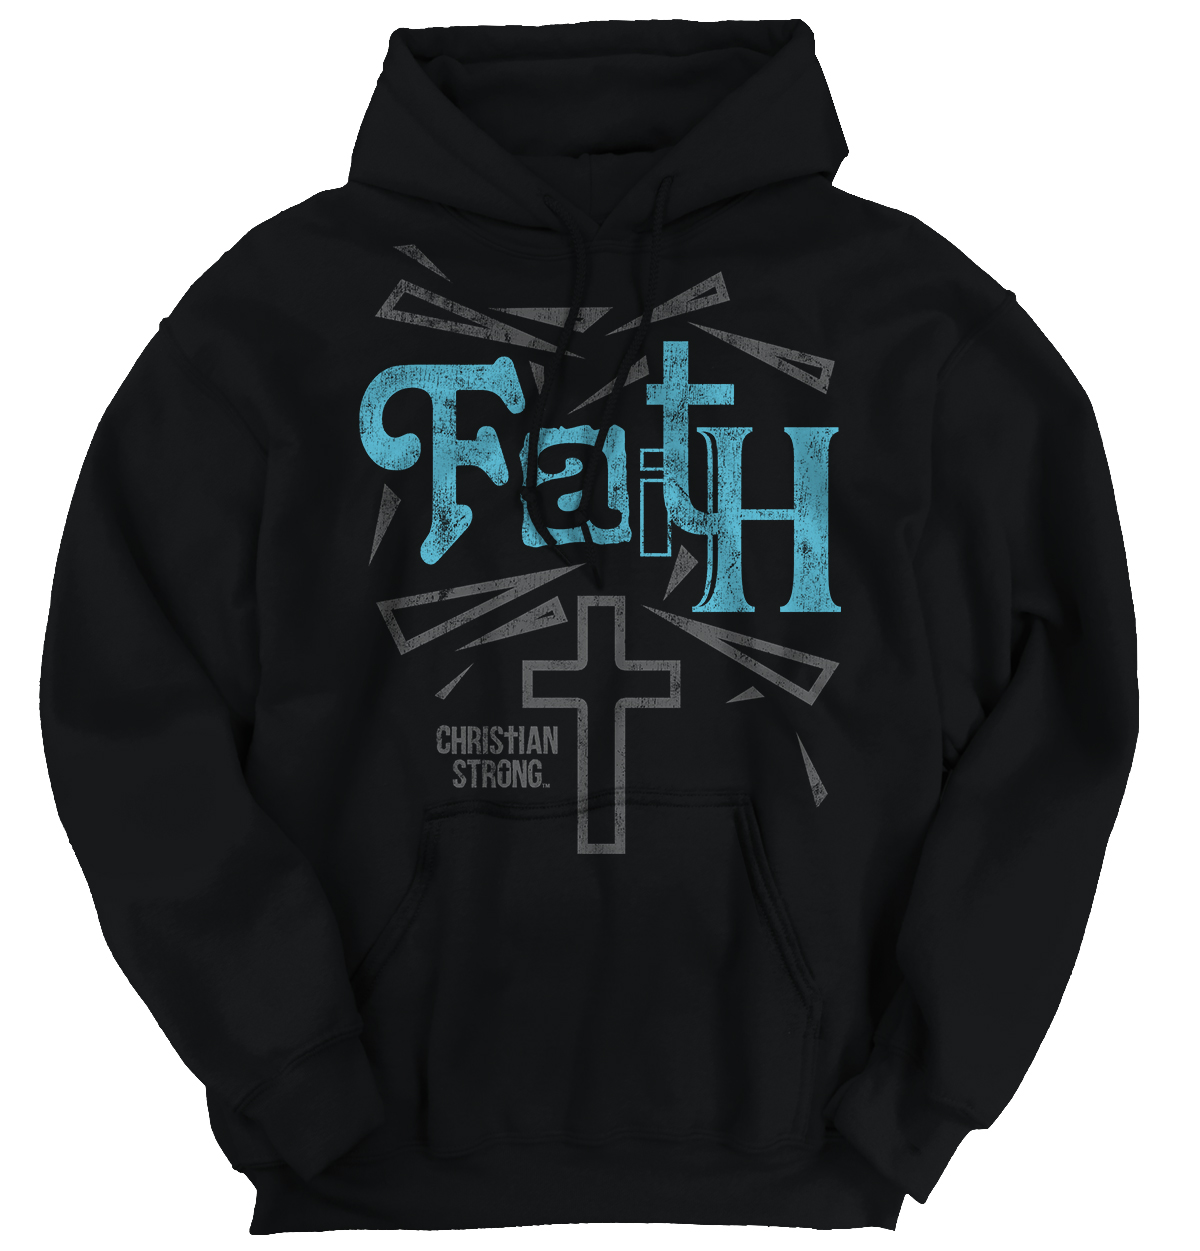 Christian Religious Hooded Sweatshirt Faith Cross Christ Jesus God by Christian Strong